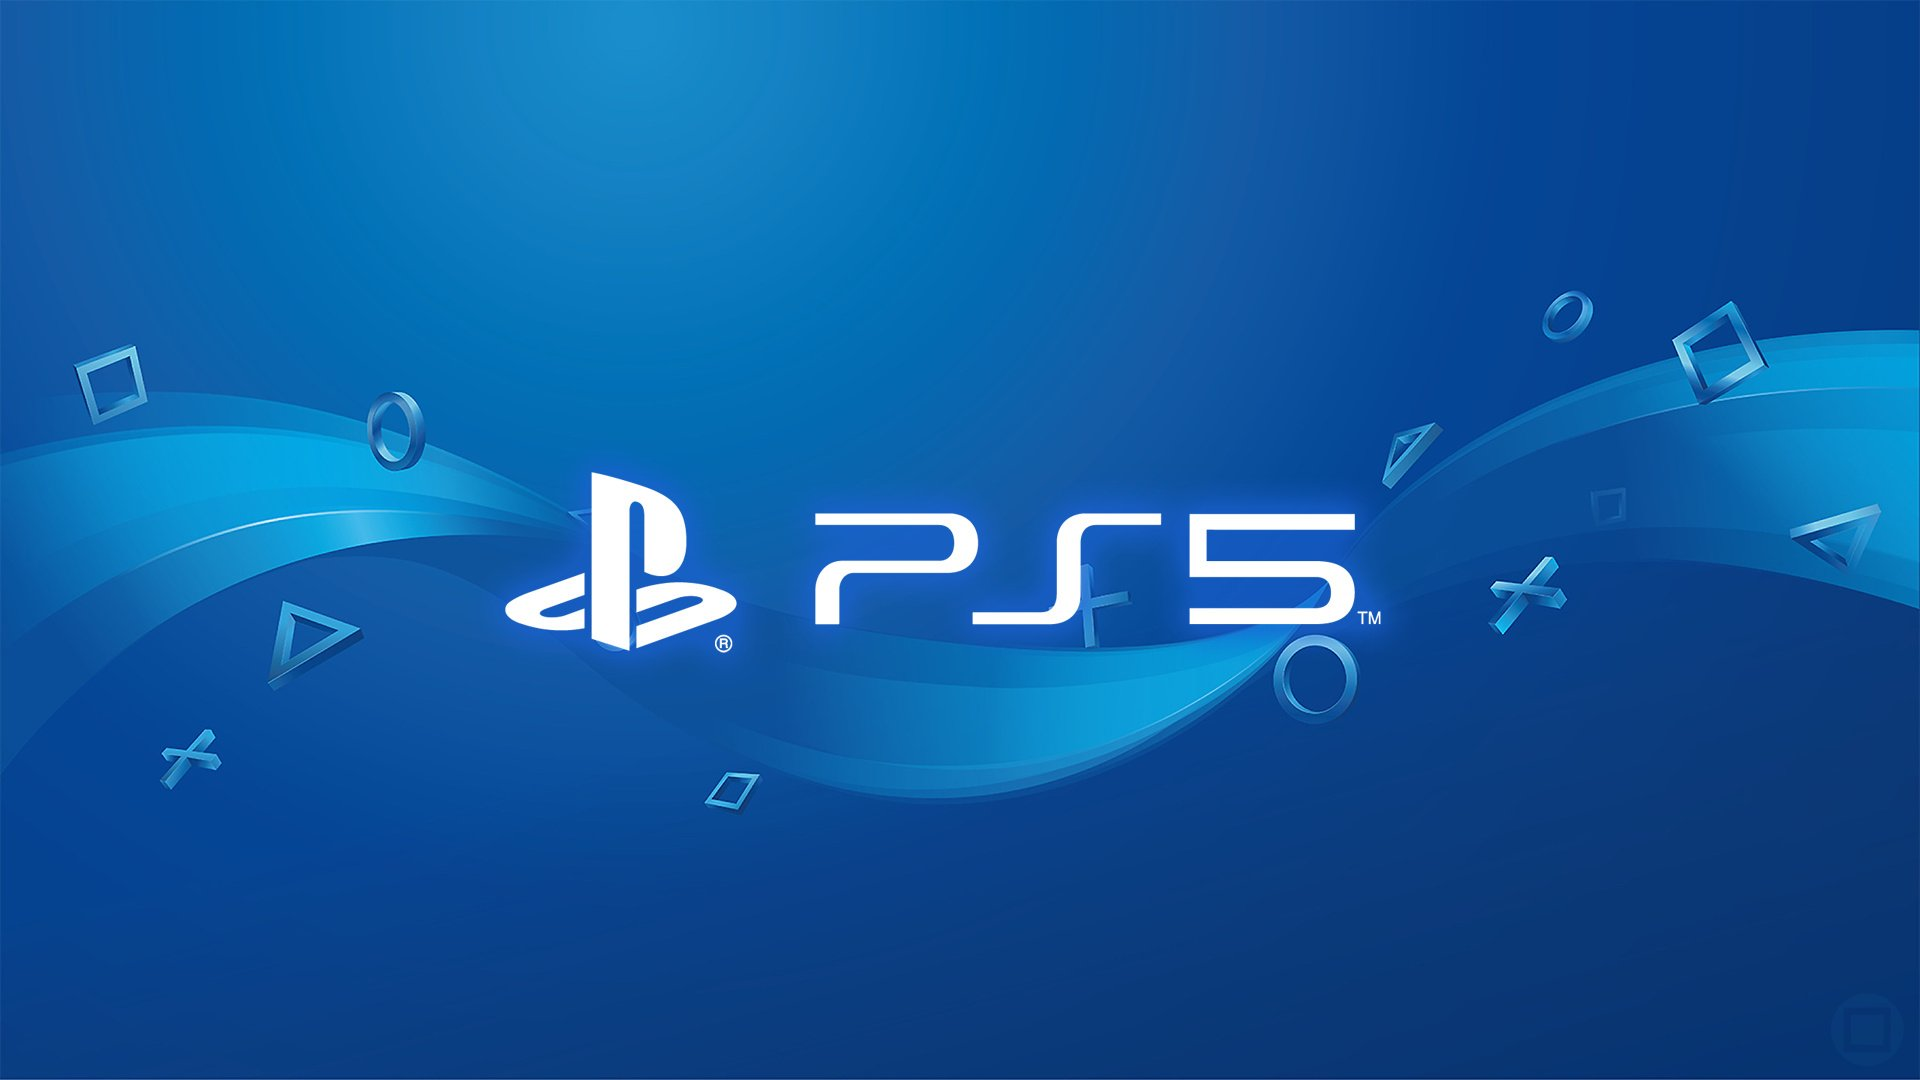 Poll What Are Your Thoughts On The Ps5 S Logo Push Square